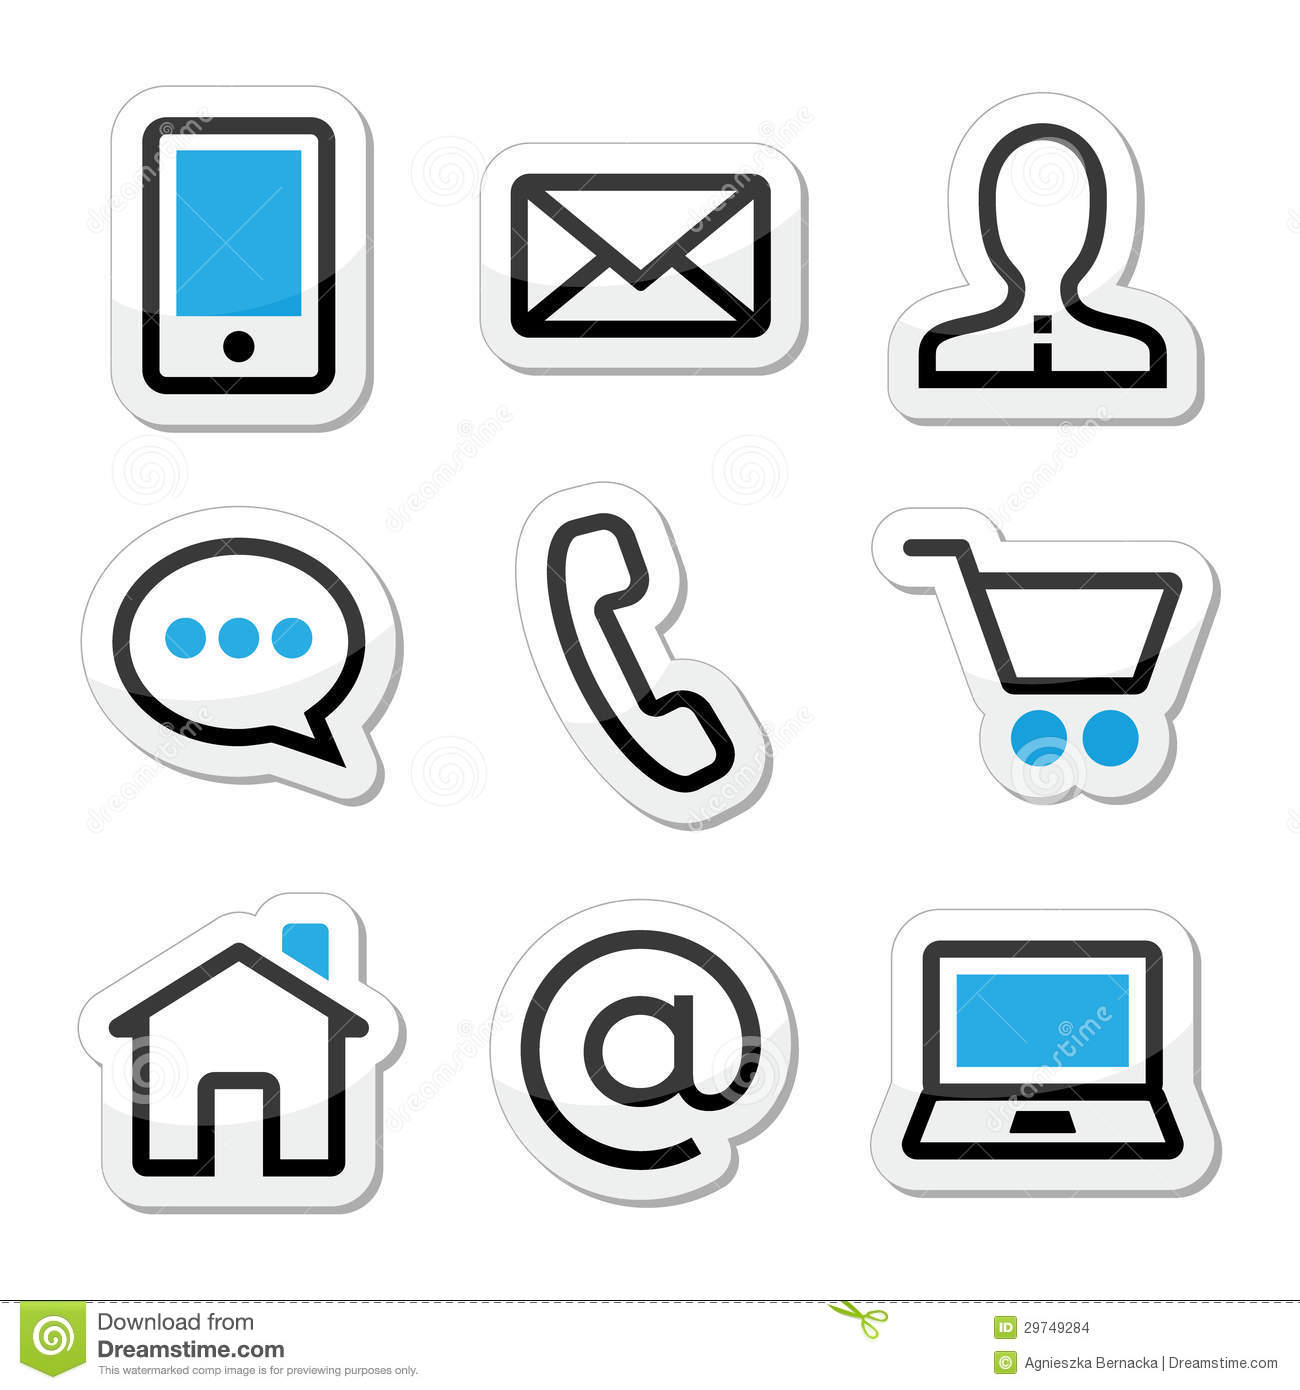 10 Contact Icon Set Images - Contact Us Icon Set, Contact ...